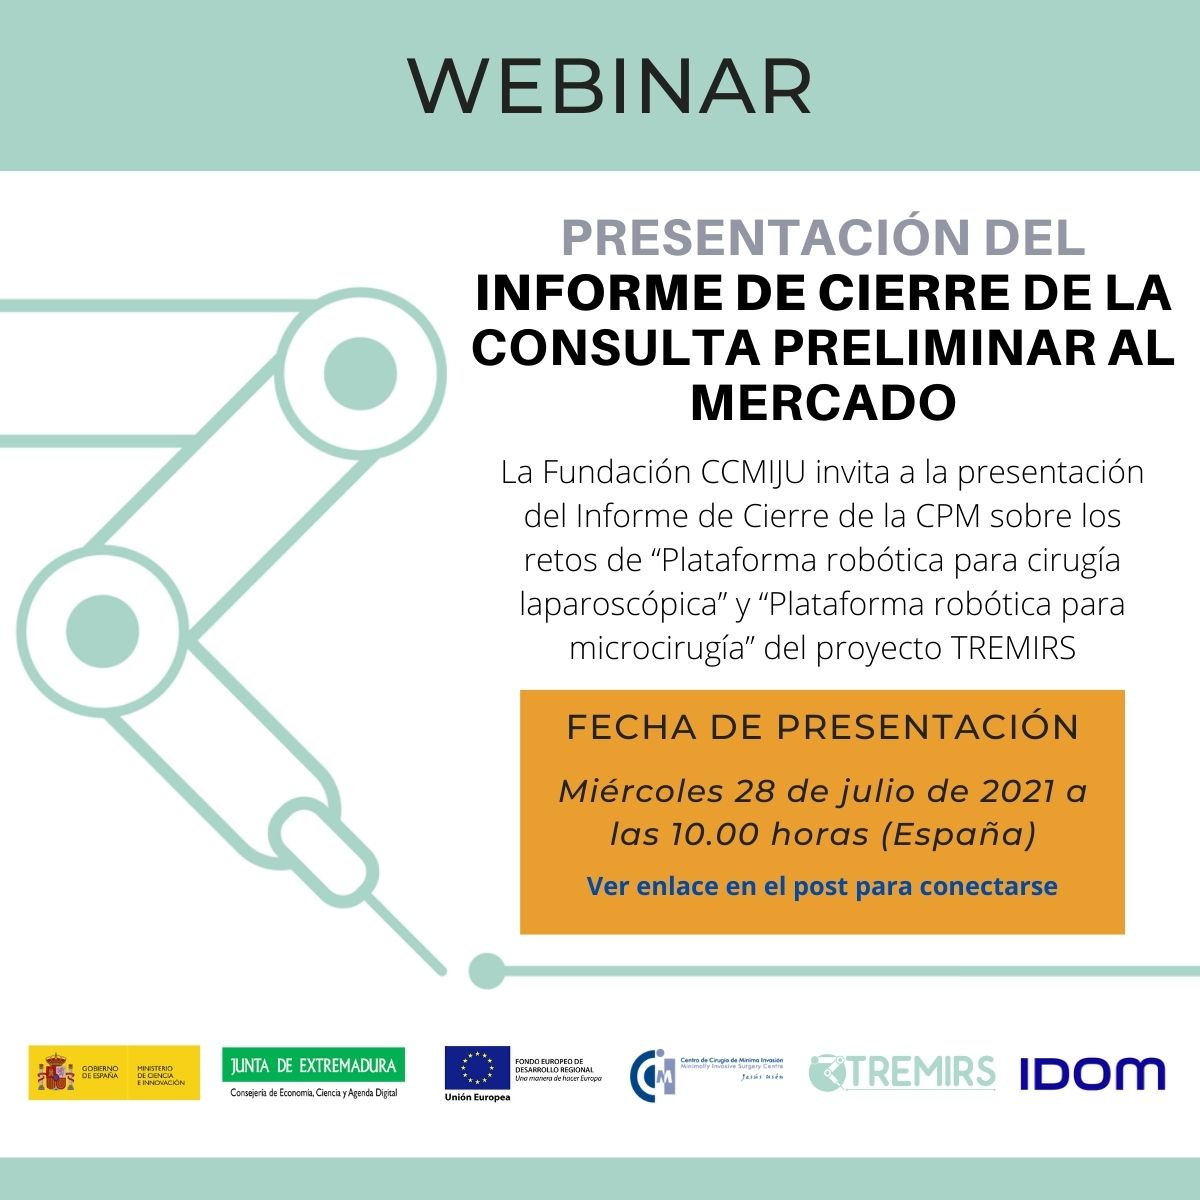 Webinar on the final report related to Preliminary Market Consultation